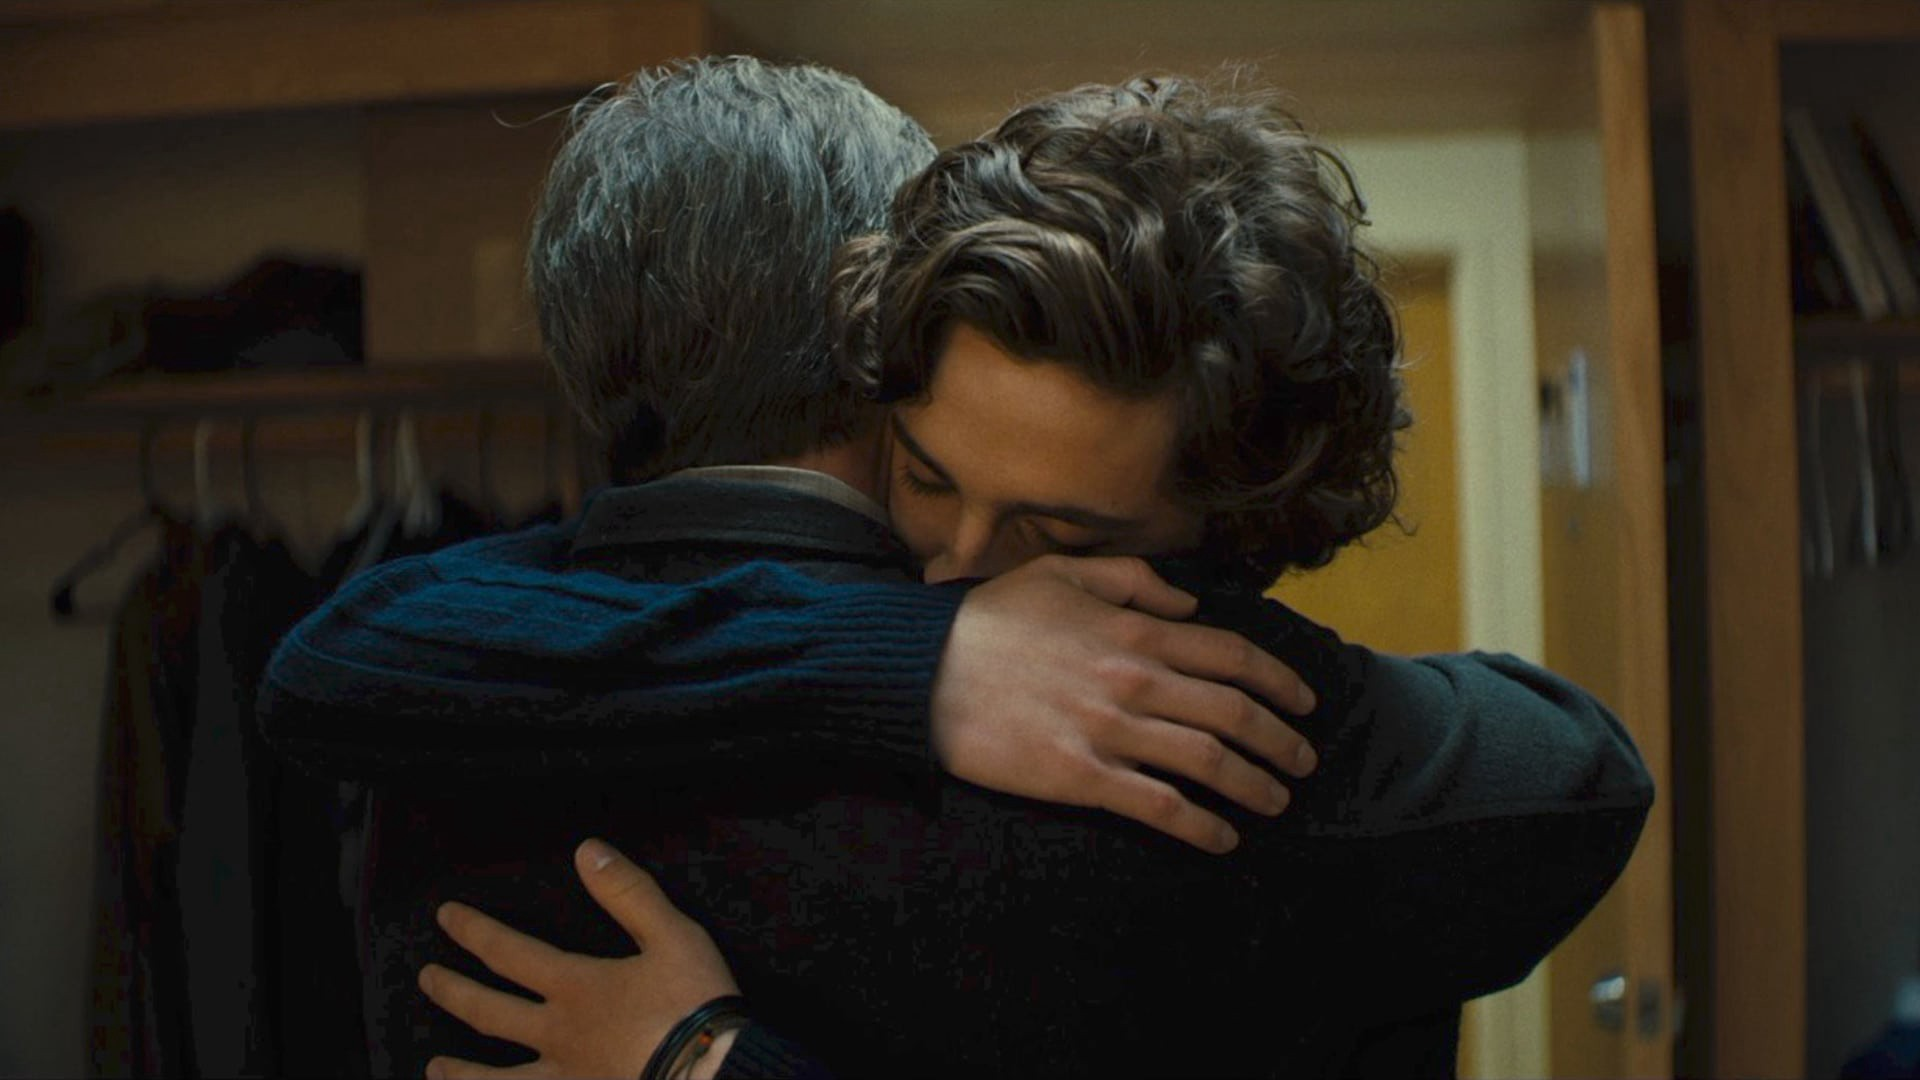 BEAUTIFUL BOY is a Deeply Authentic Chronicle of Addiction